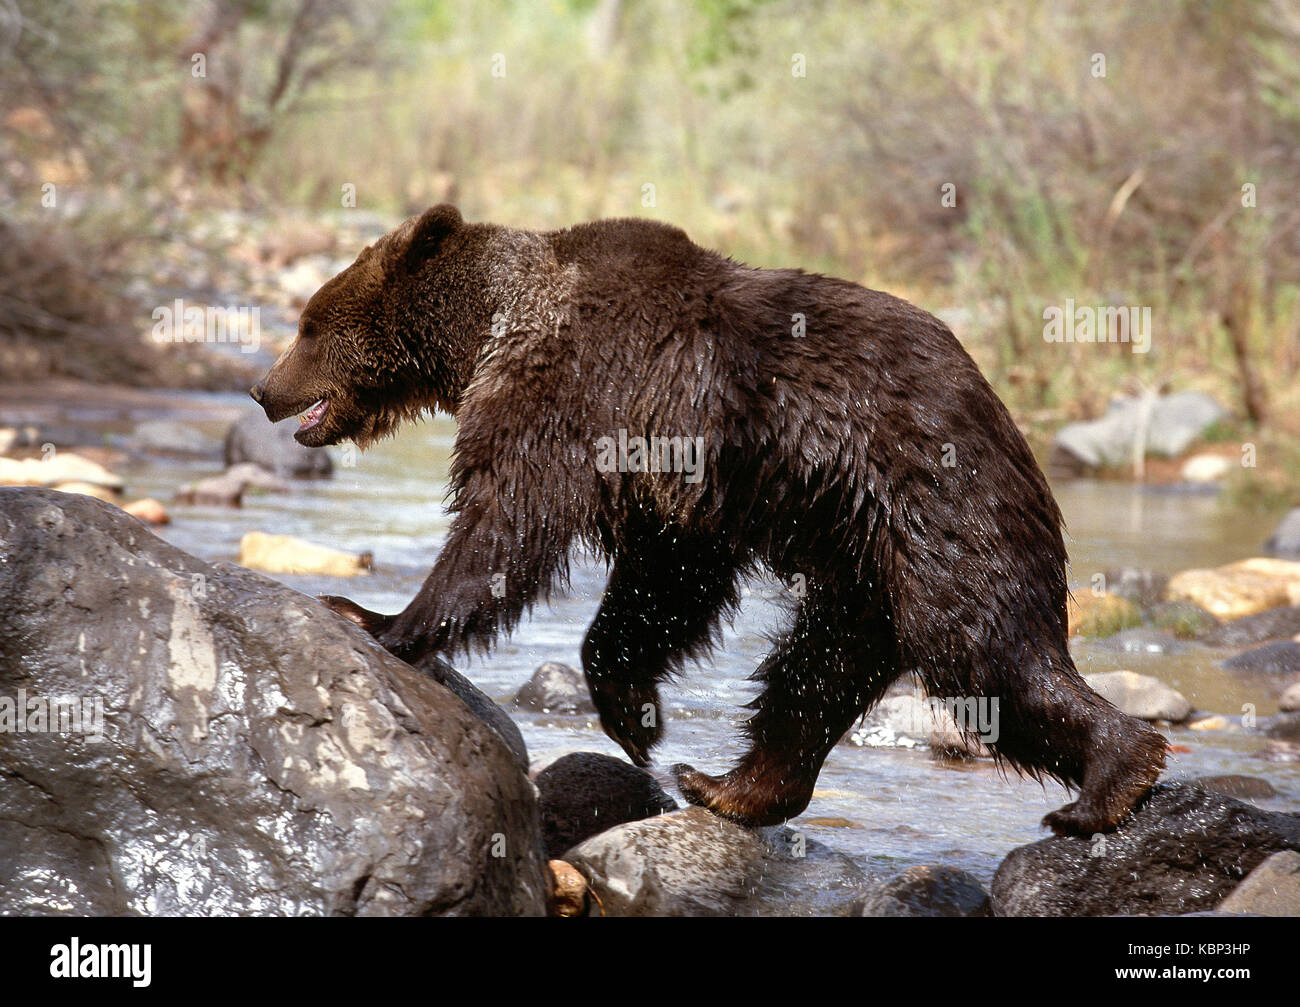 USA. Utah. Wildlife. Grizzly Bear crossing a river. - Stock Image